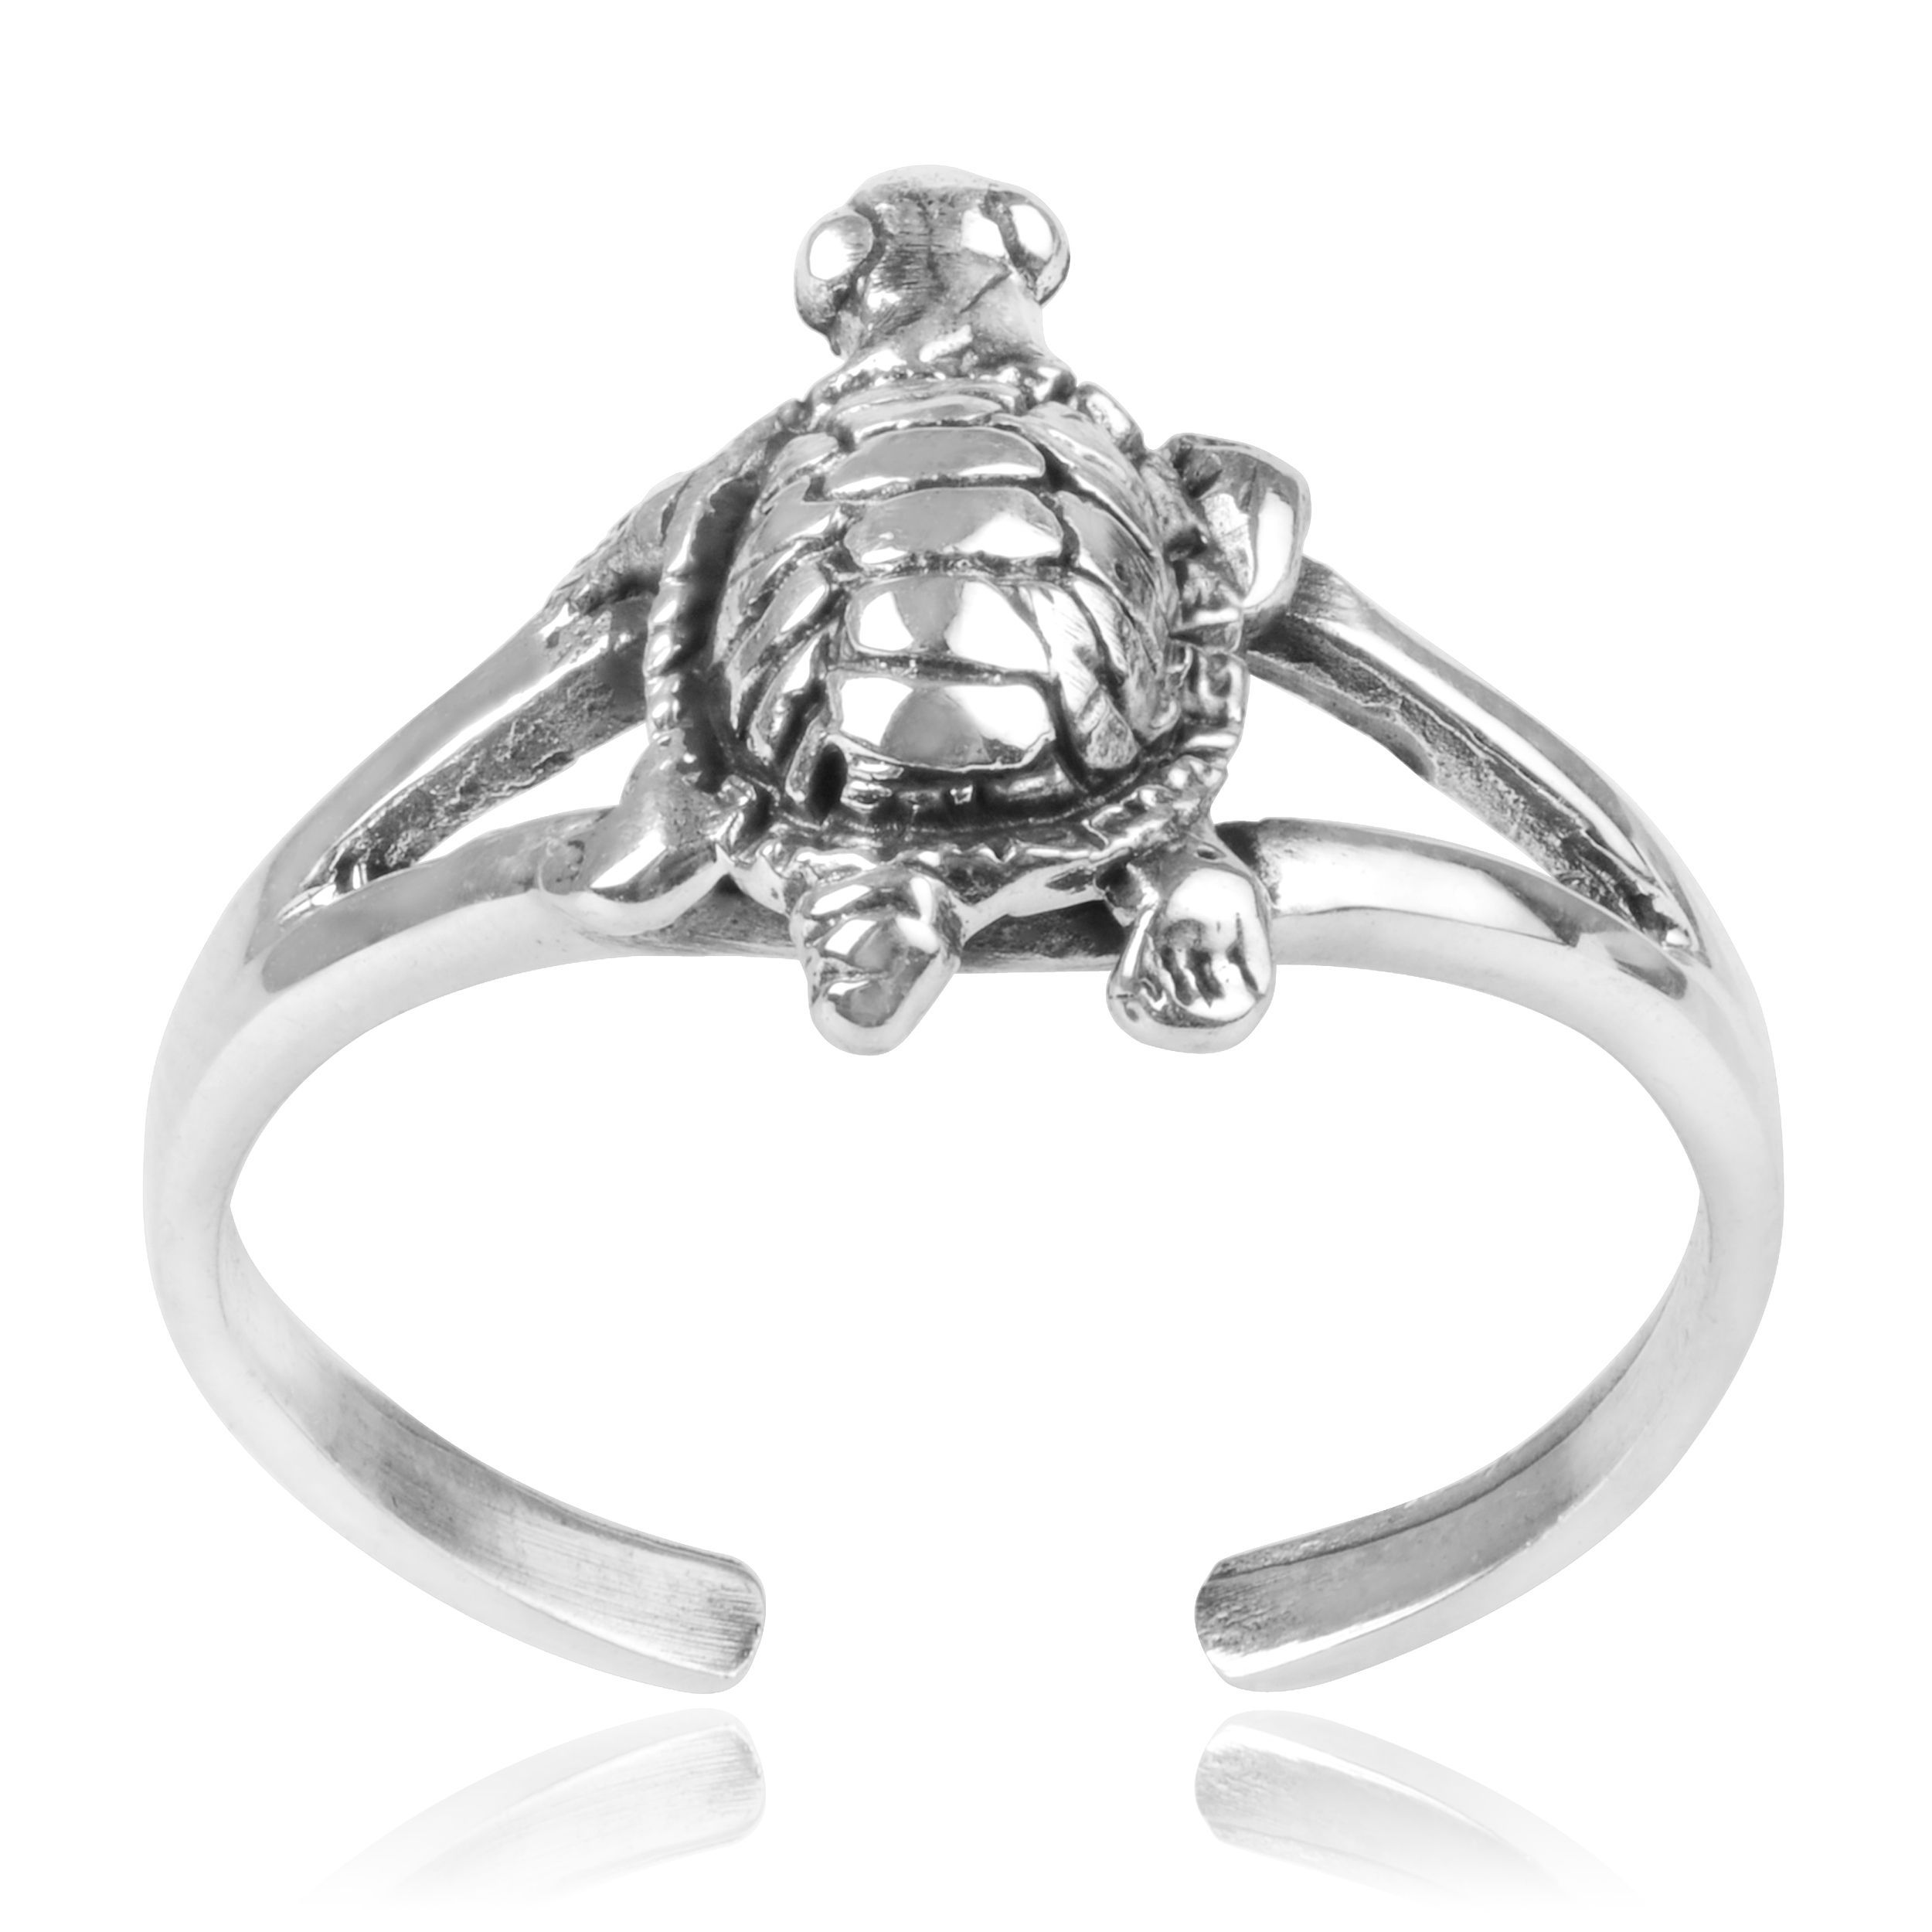 within photo ring online shopping rings best toe of sterling everything turtle jewelry body silver